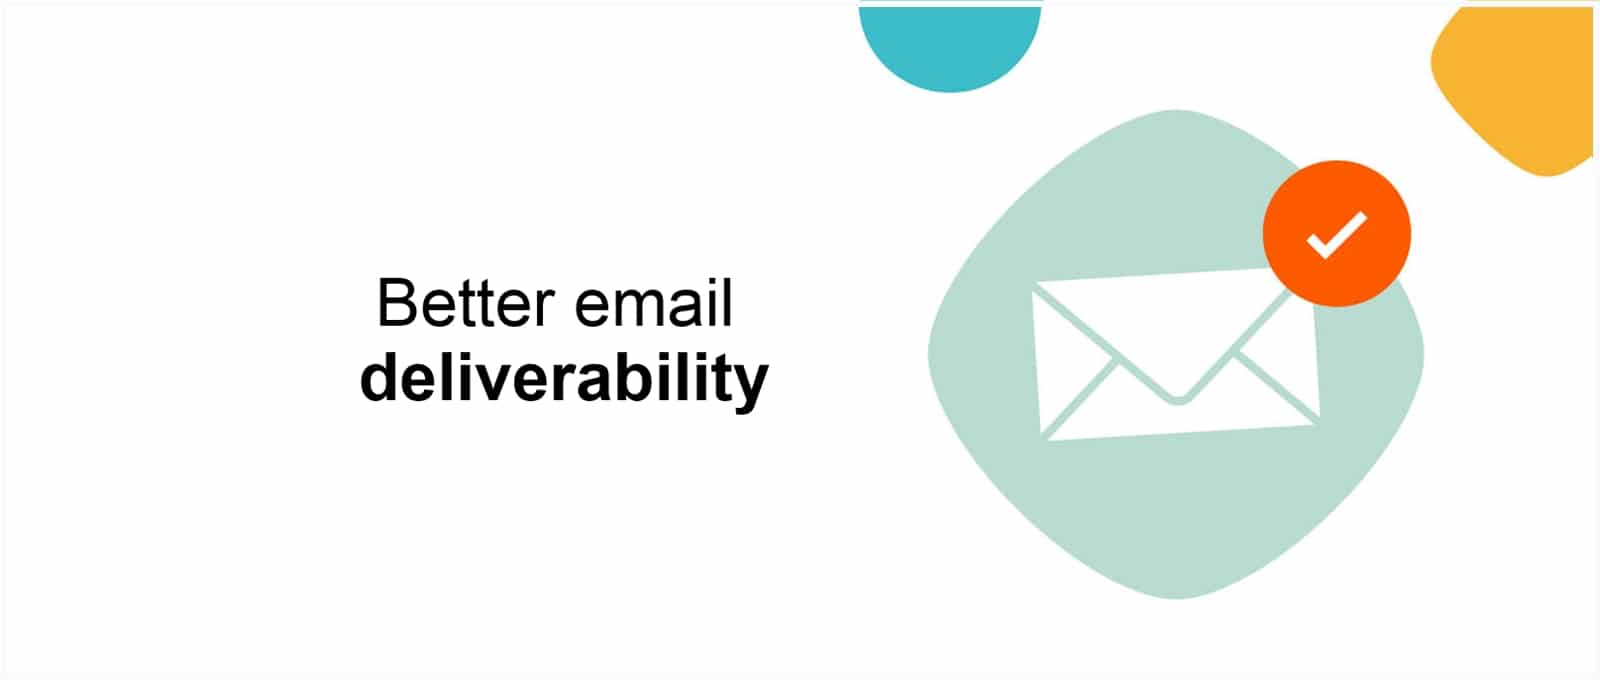 Experience Better Email Deliverability With Sendinblue